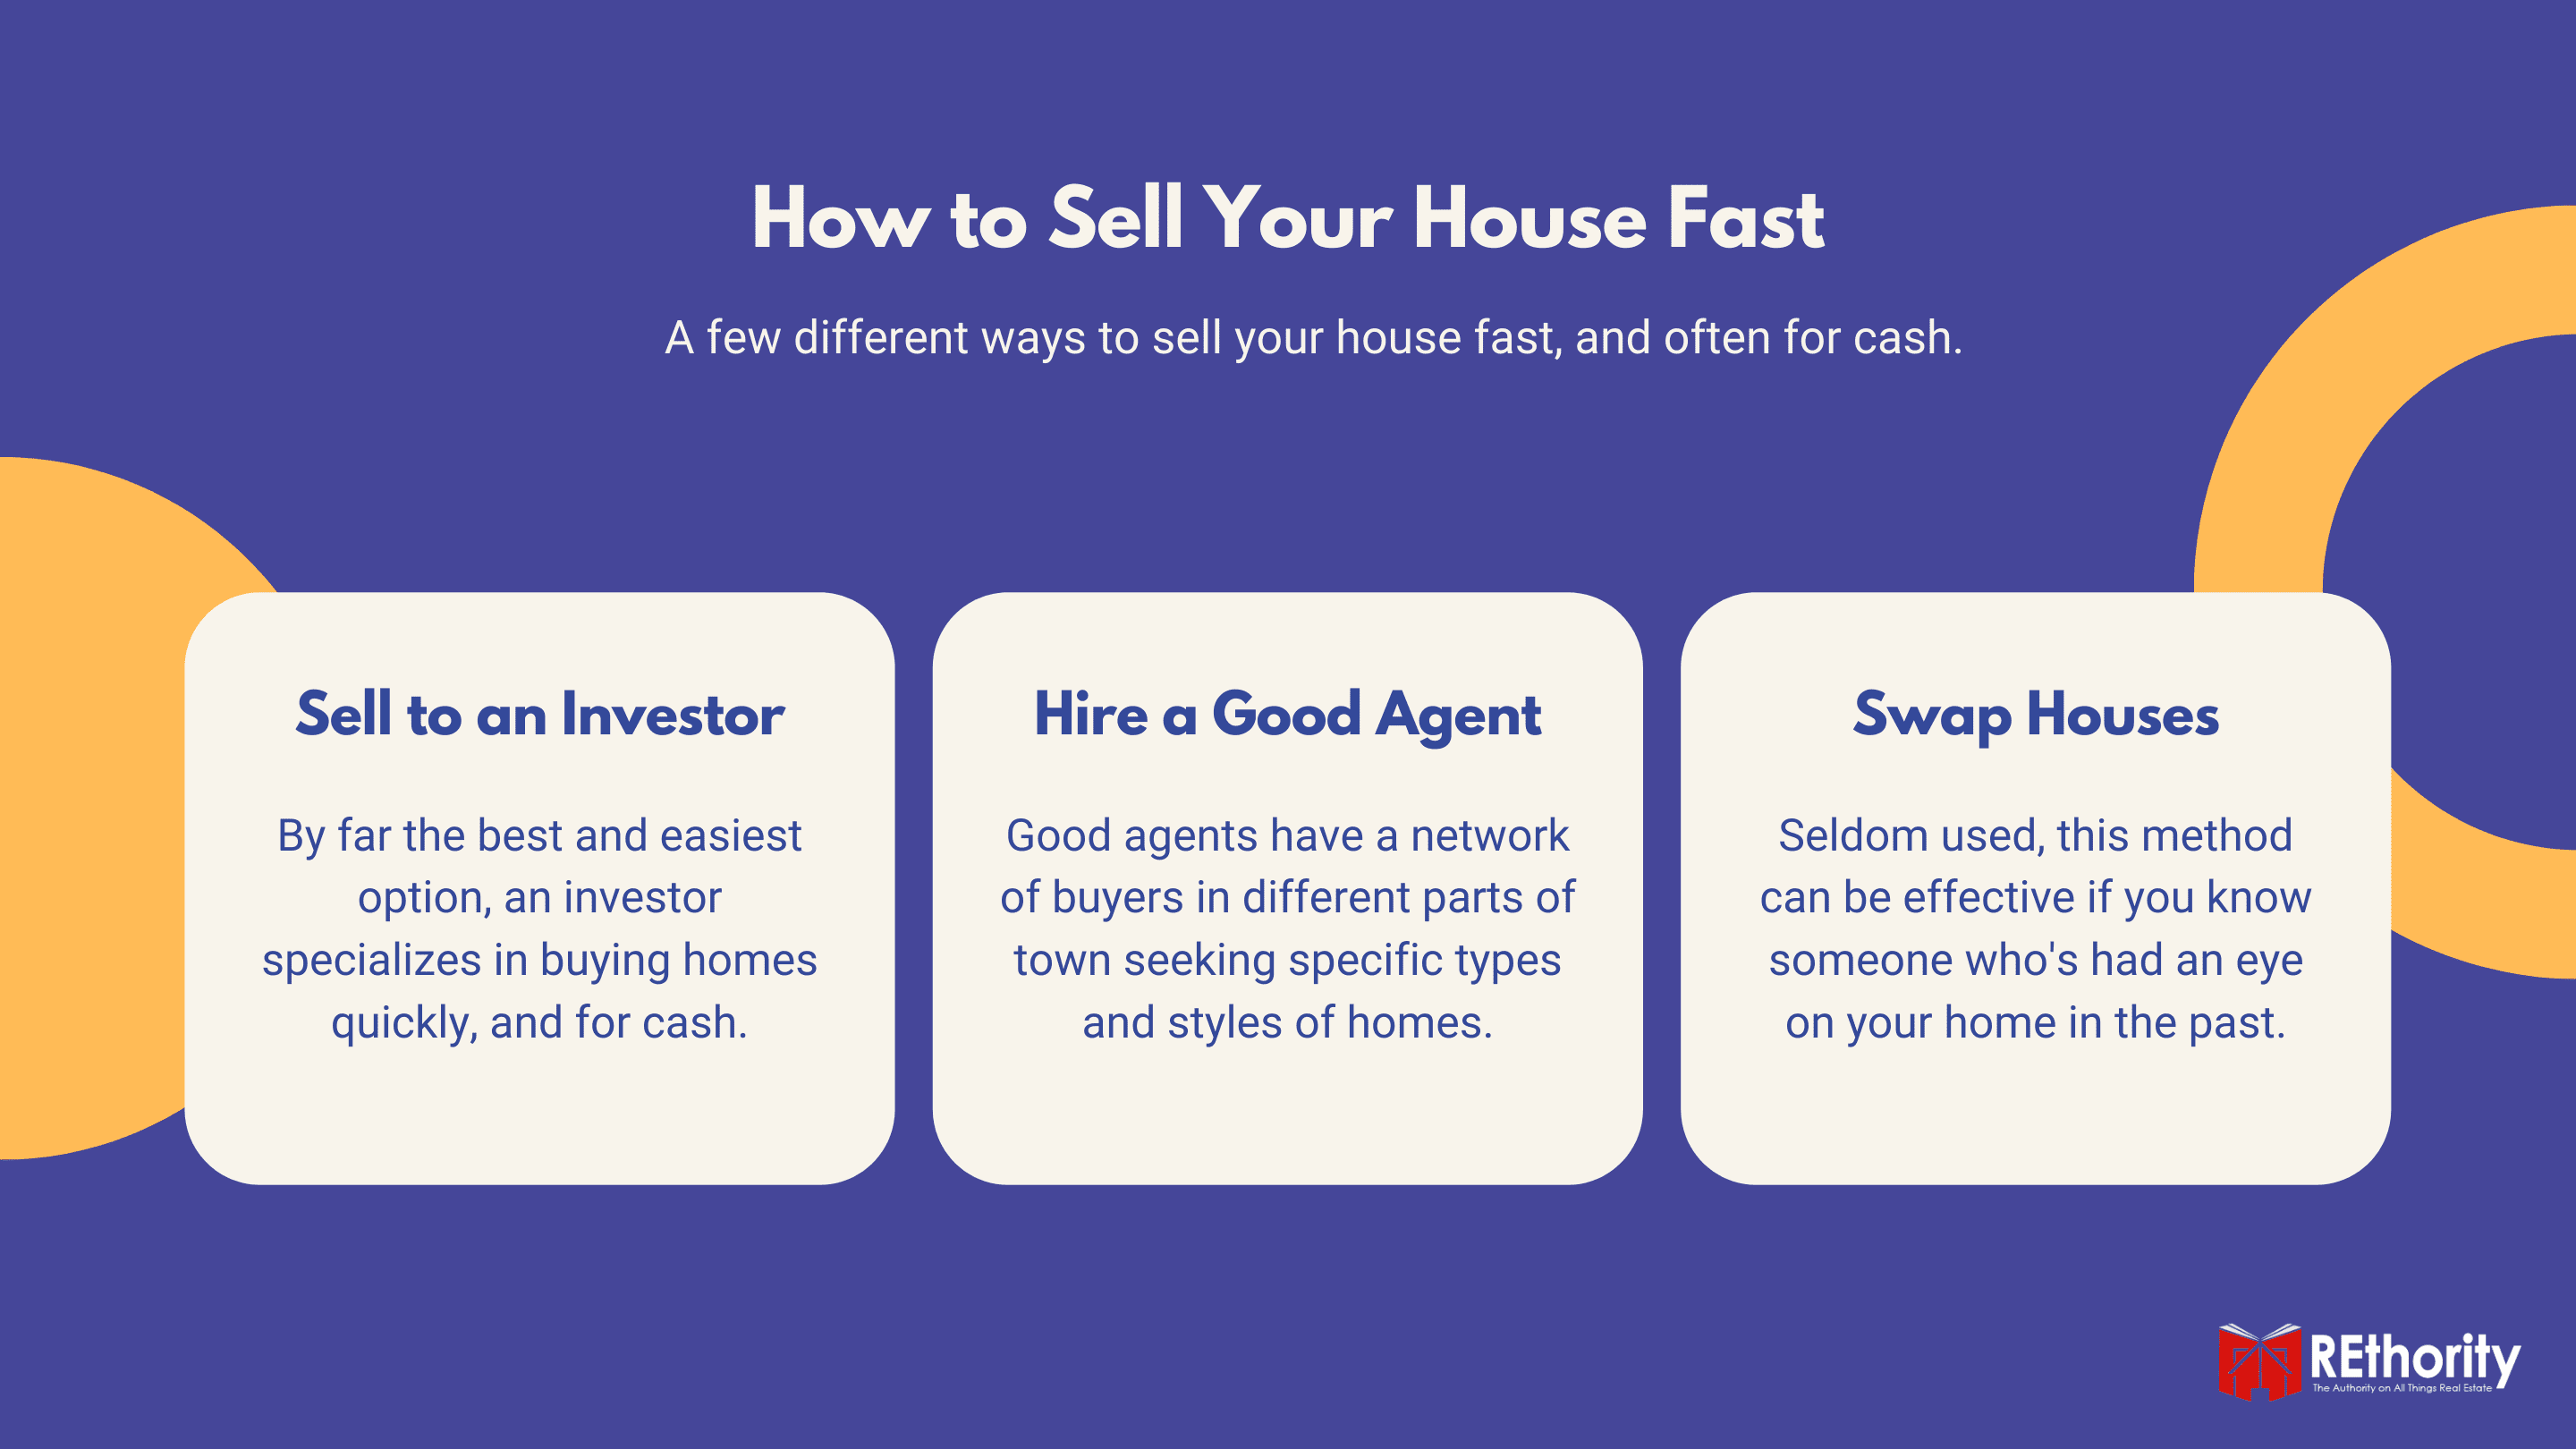 How to Sell Your House Fast graphic against blue background with explanation of what the topic is